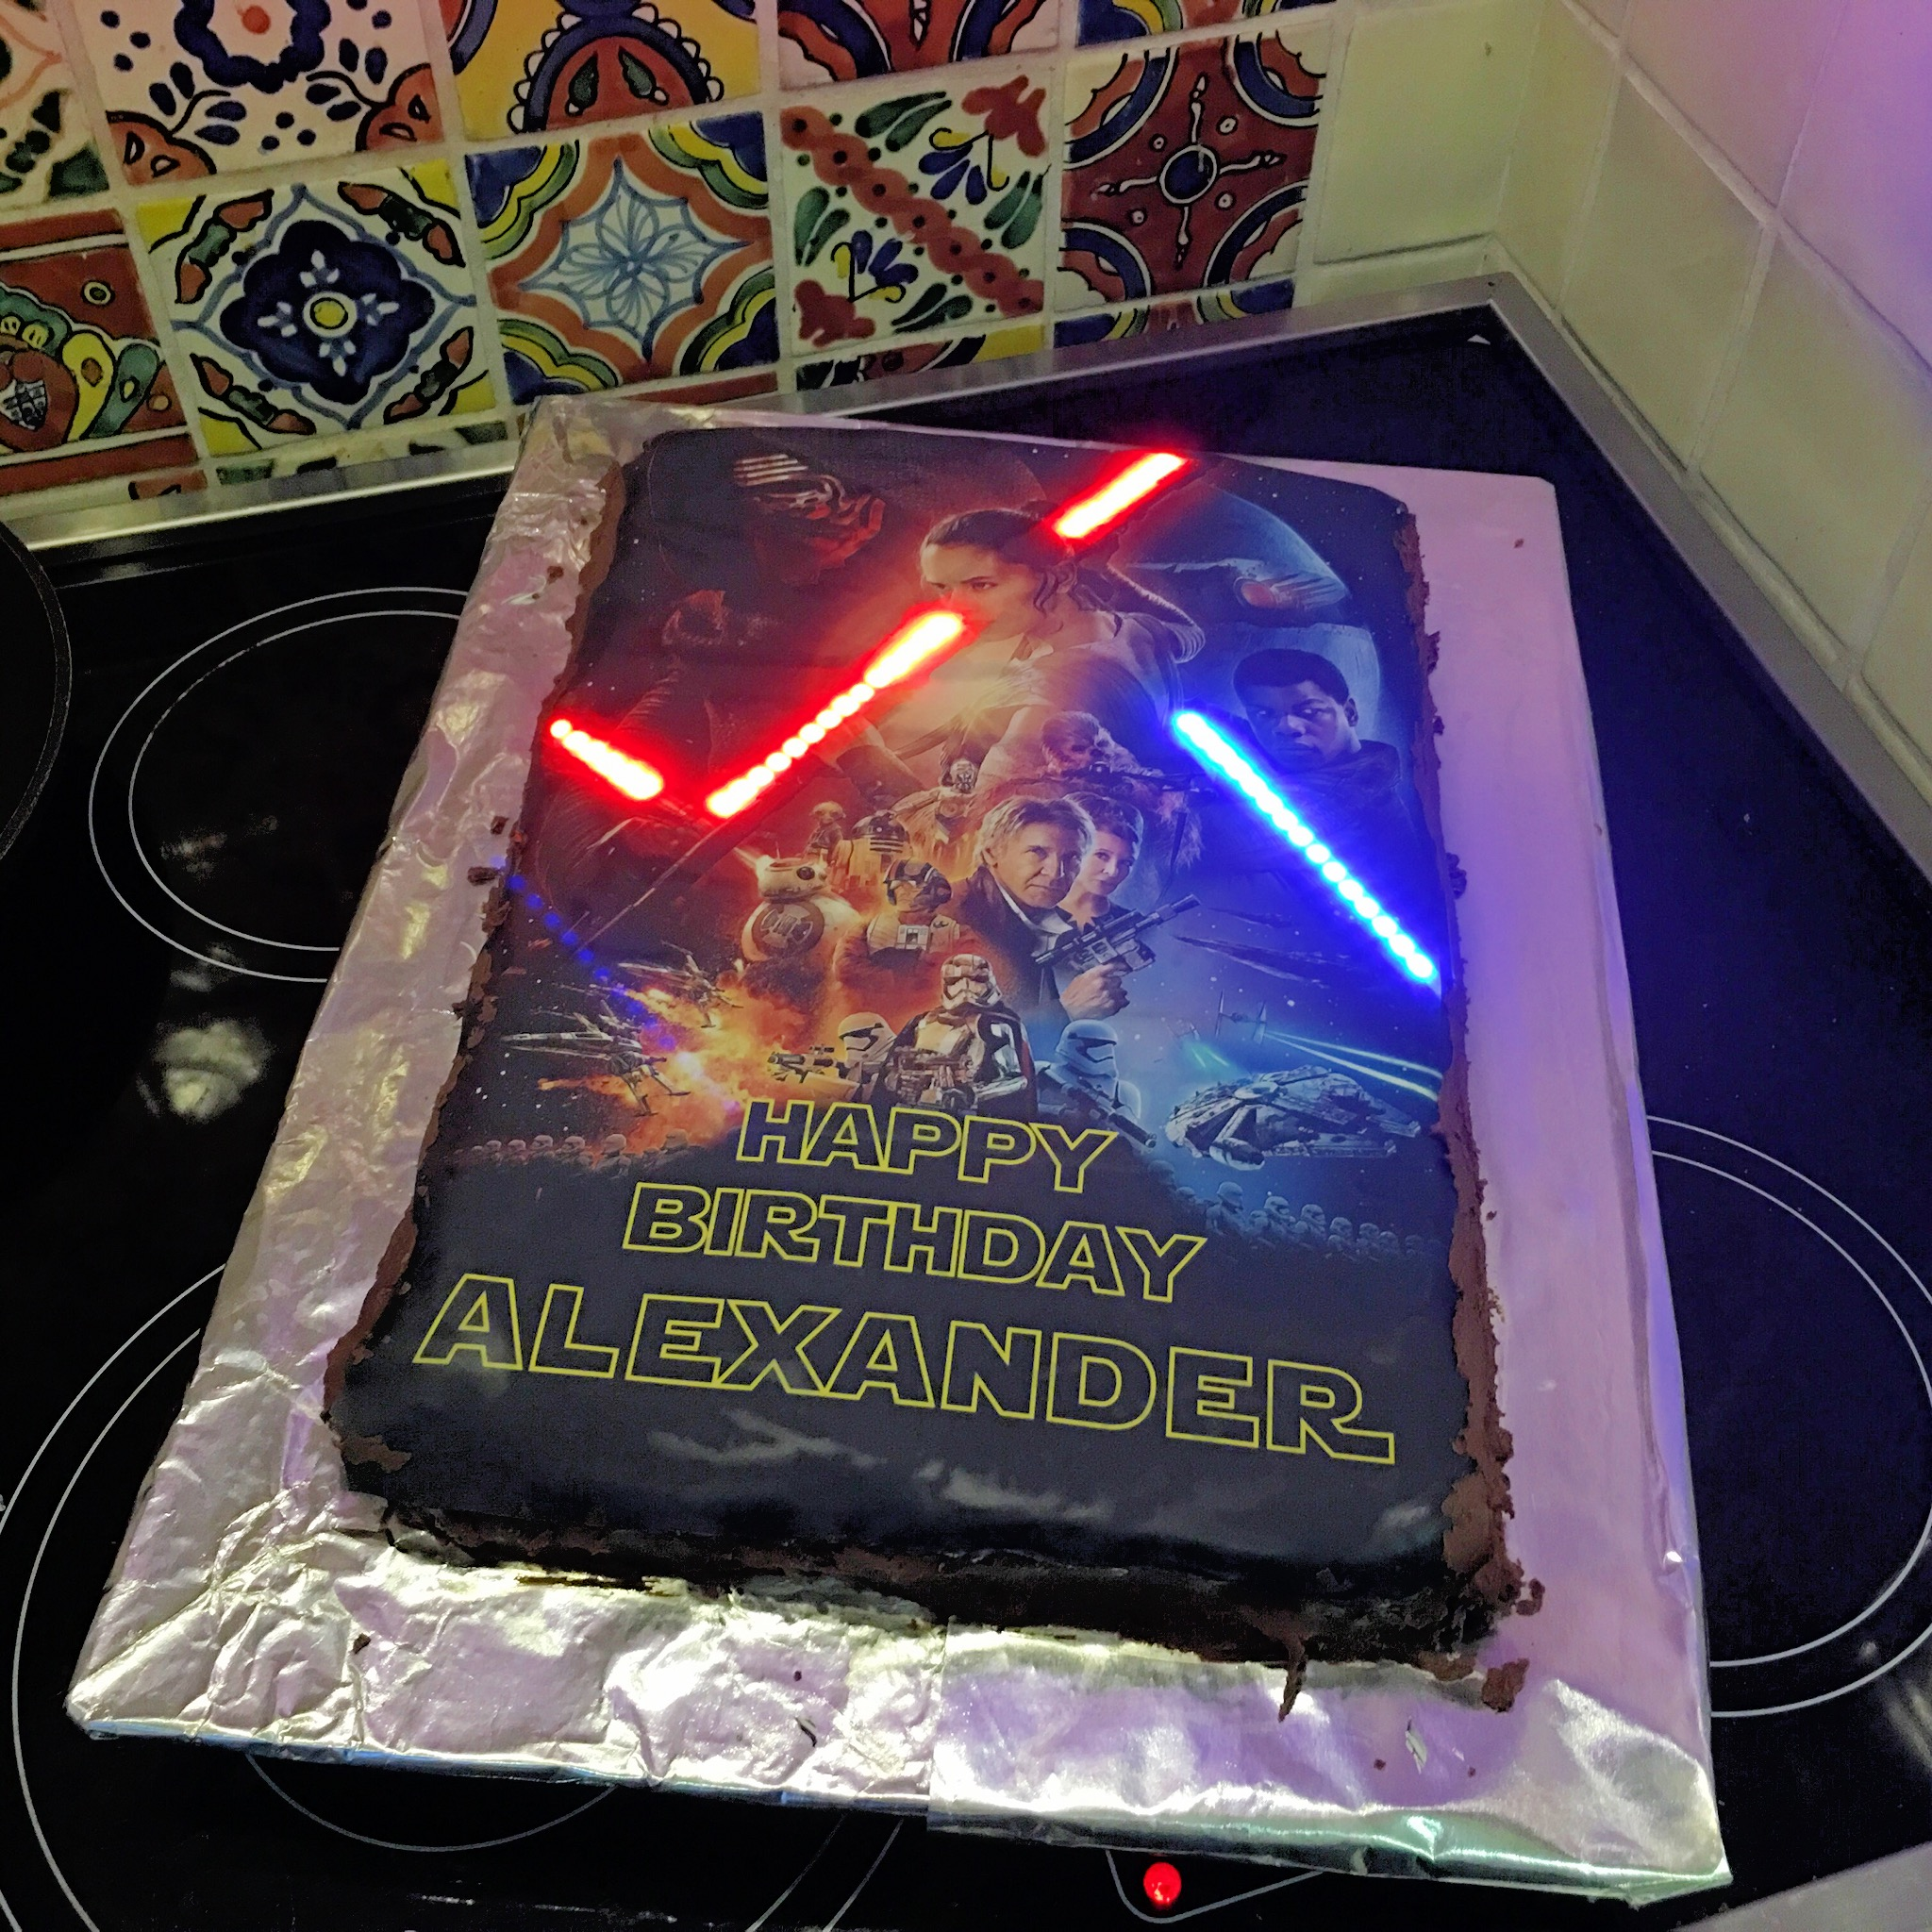 This Week in Making: Star Wars Cake, Project Crates for Kids, E3 Countdown, and More